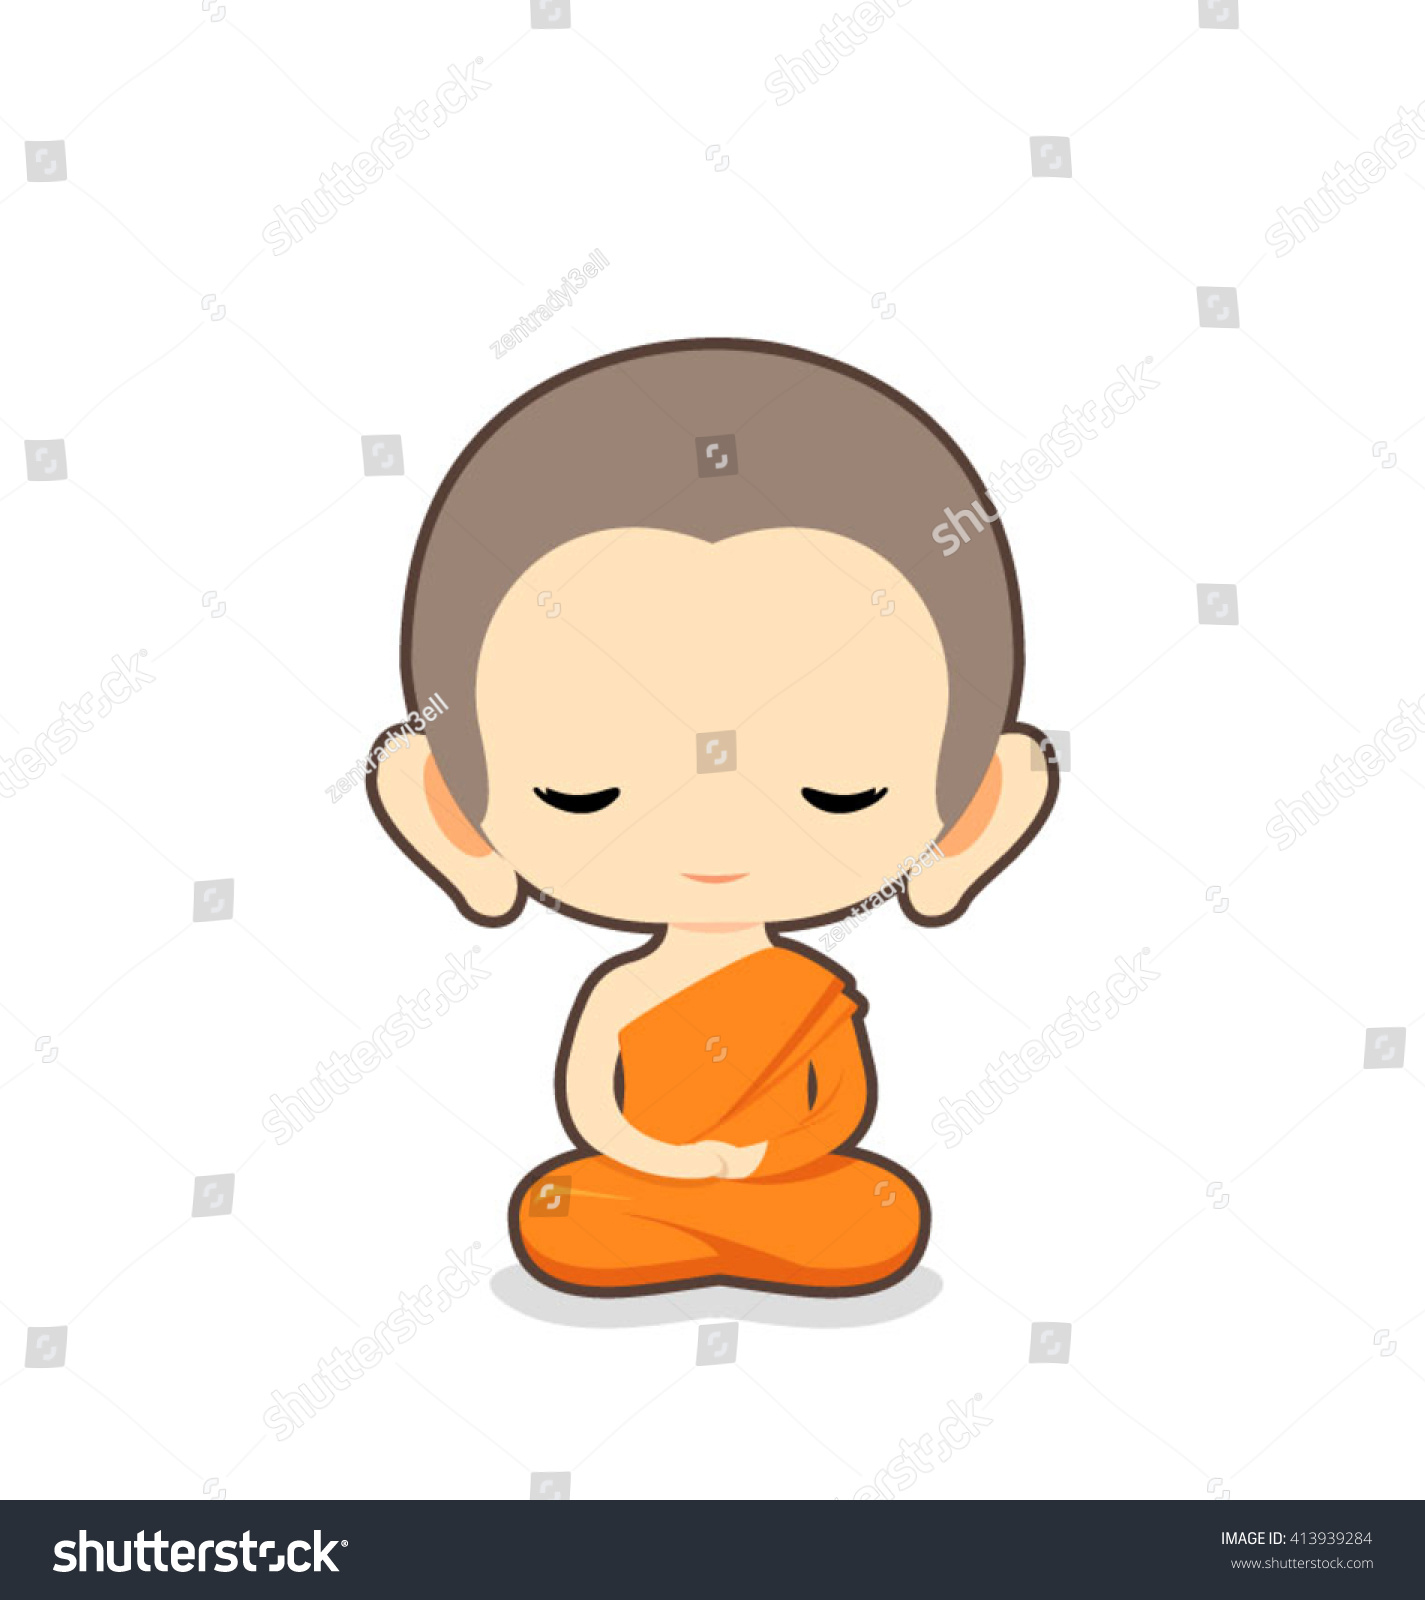 Buddhist Monk Character Designvector Illustration Stock Vector Hd